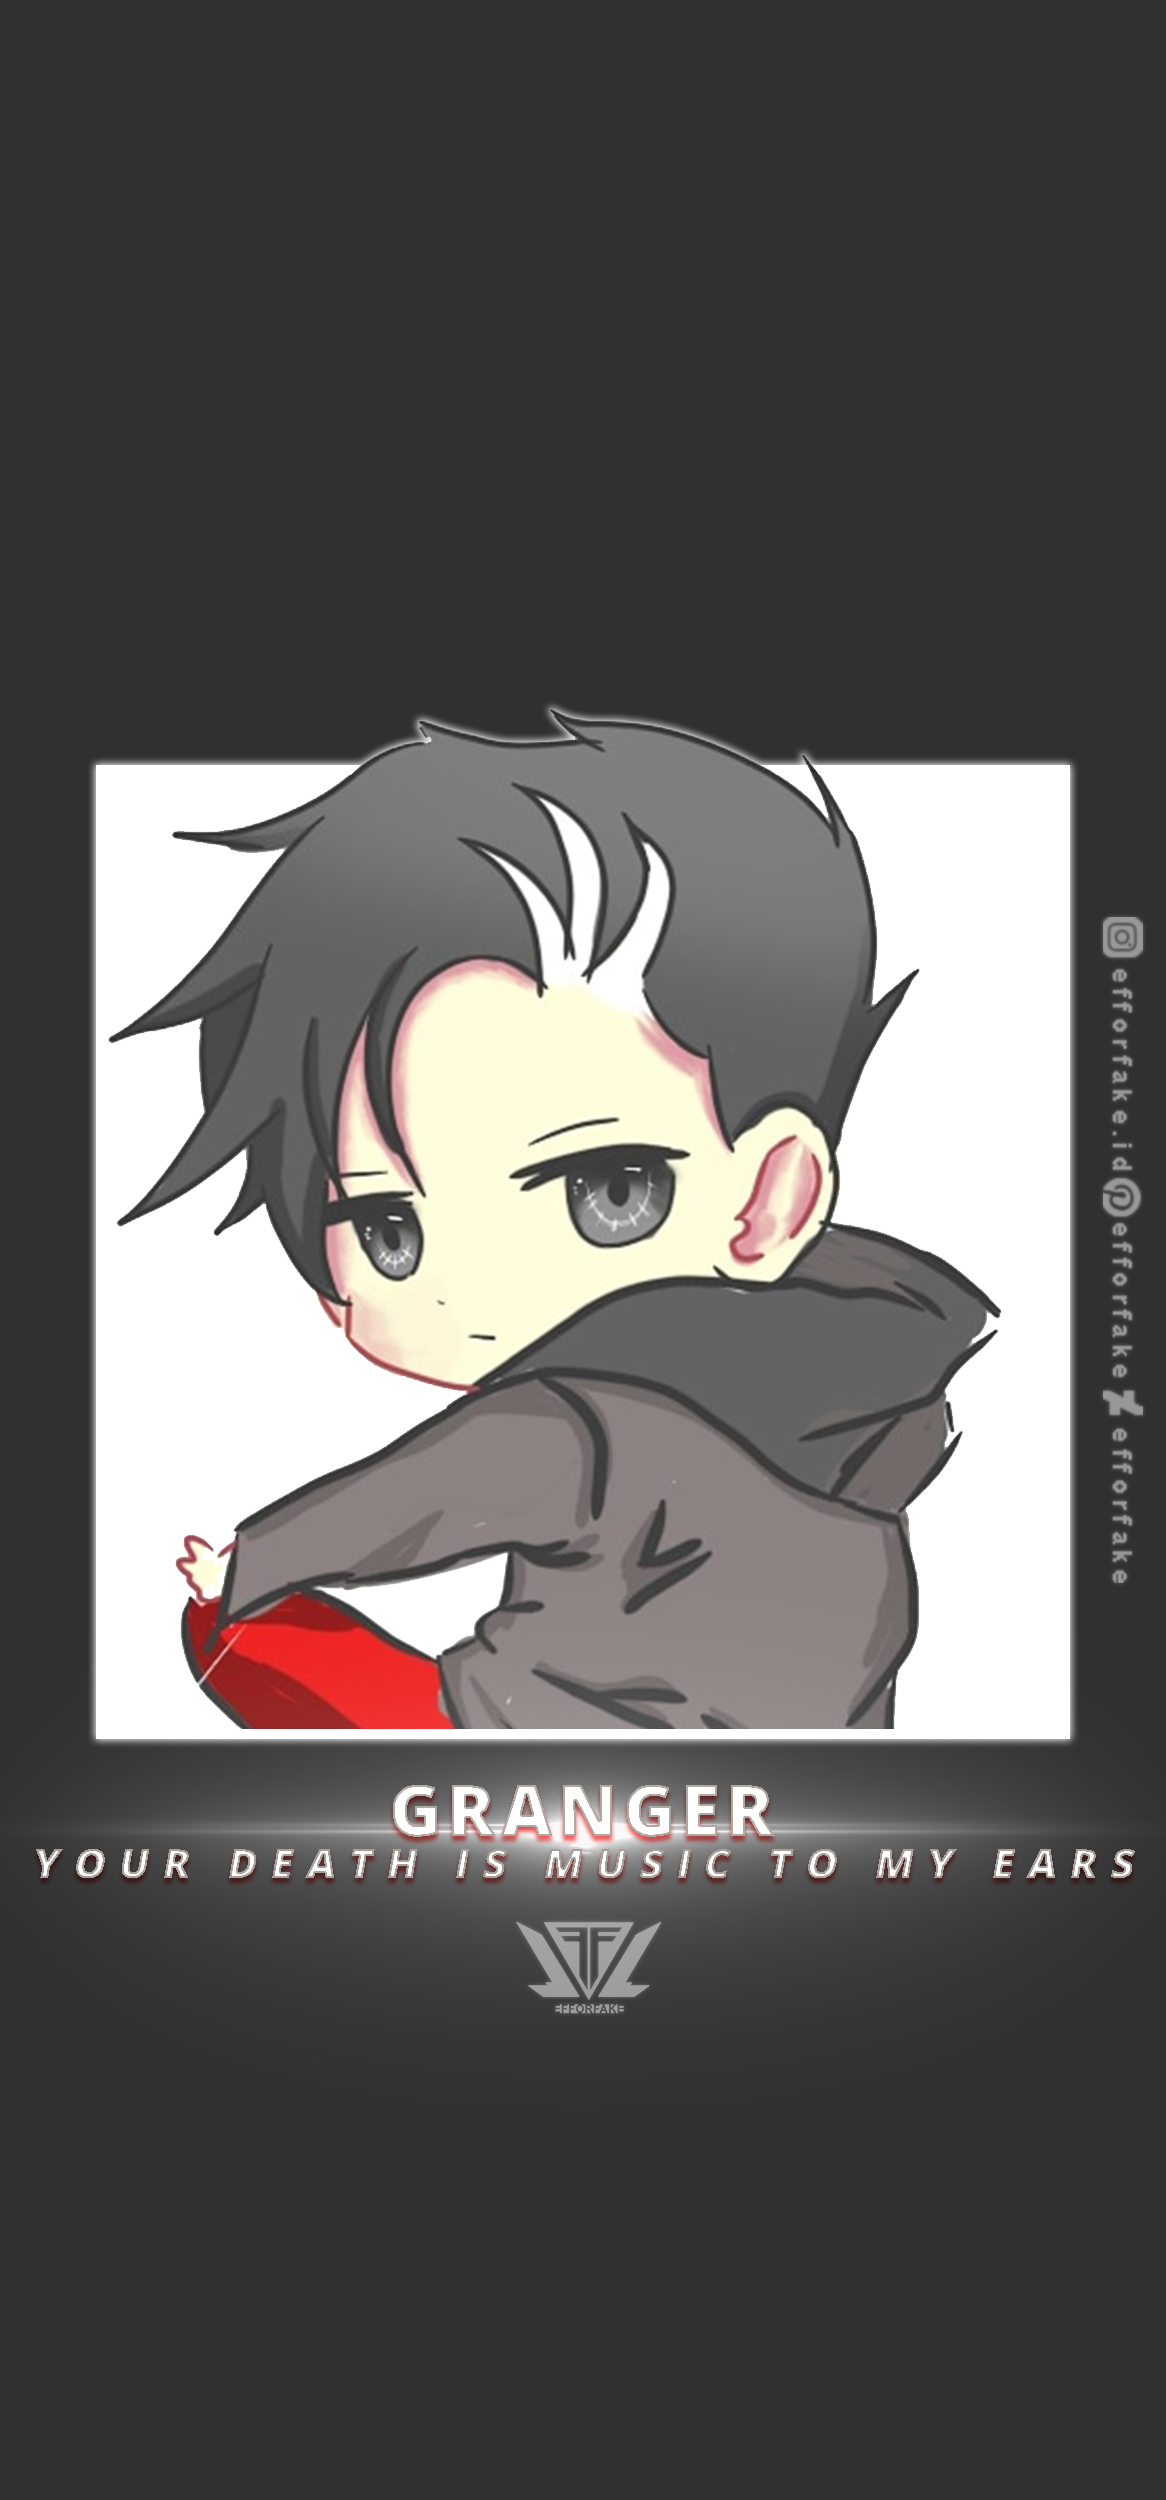 Granger Chibi White Mlbb Wallpaper By Efforfake On Deviantart